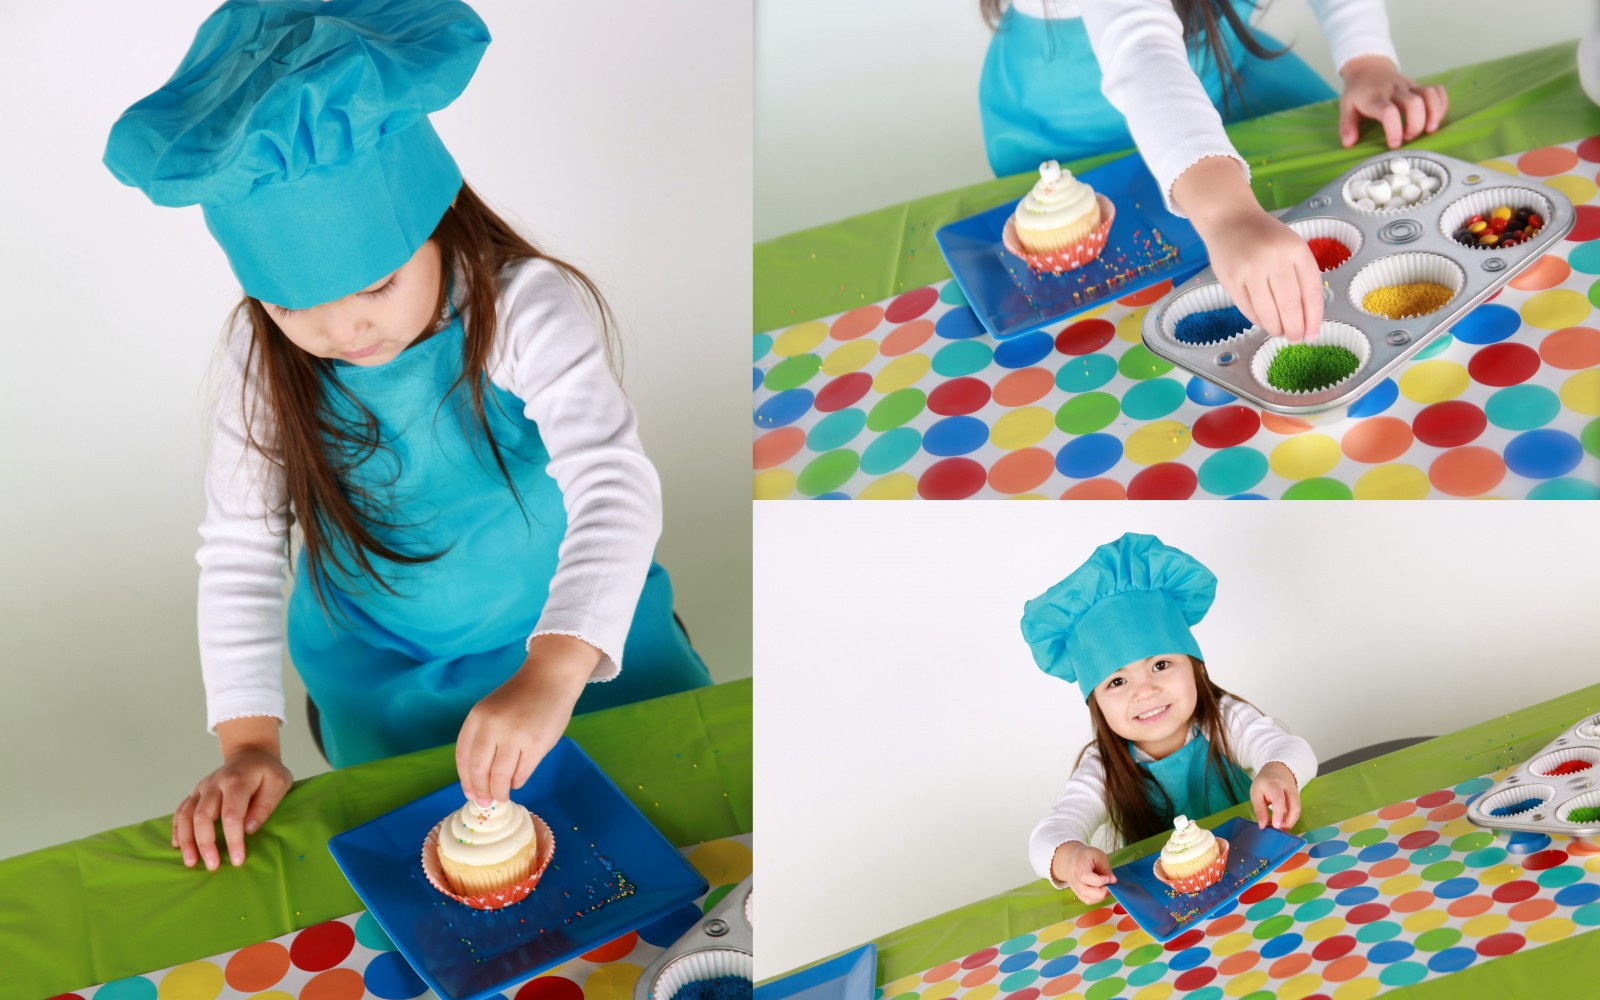 Best ideas about Cooking Birthday Party . Save or Pin Cooking Themed Kid s Birthday Party a Bud Now.